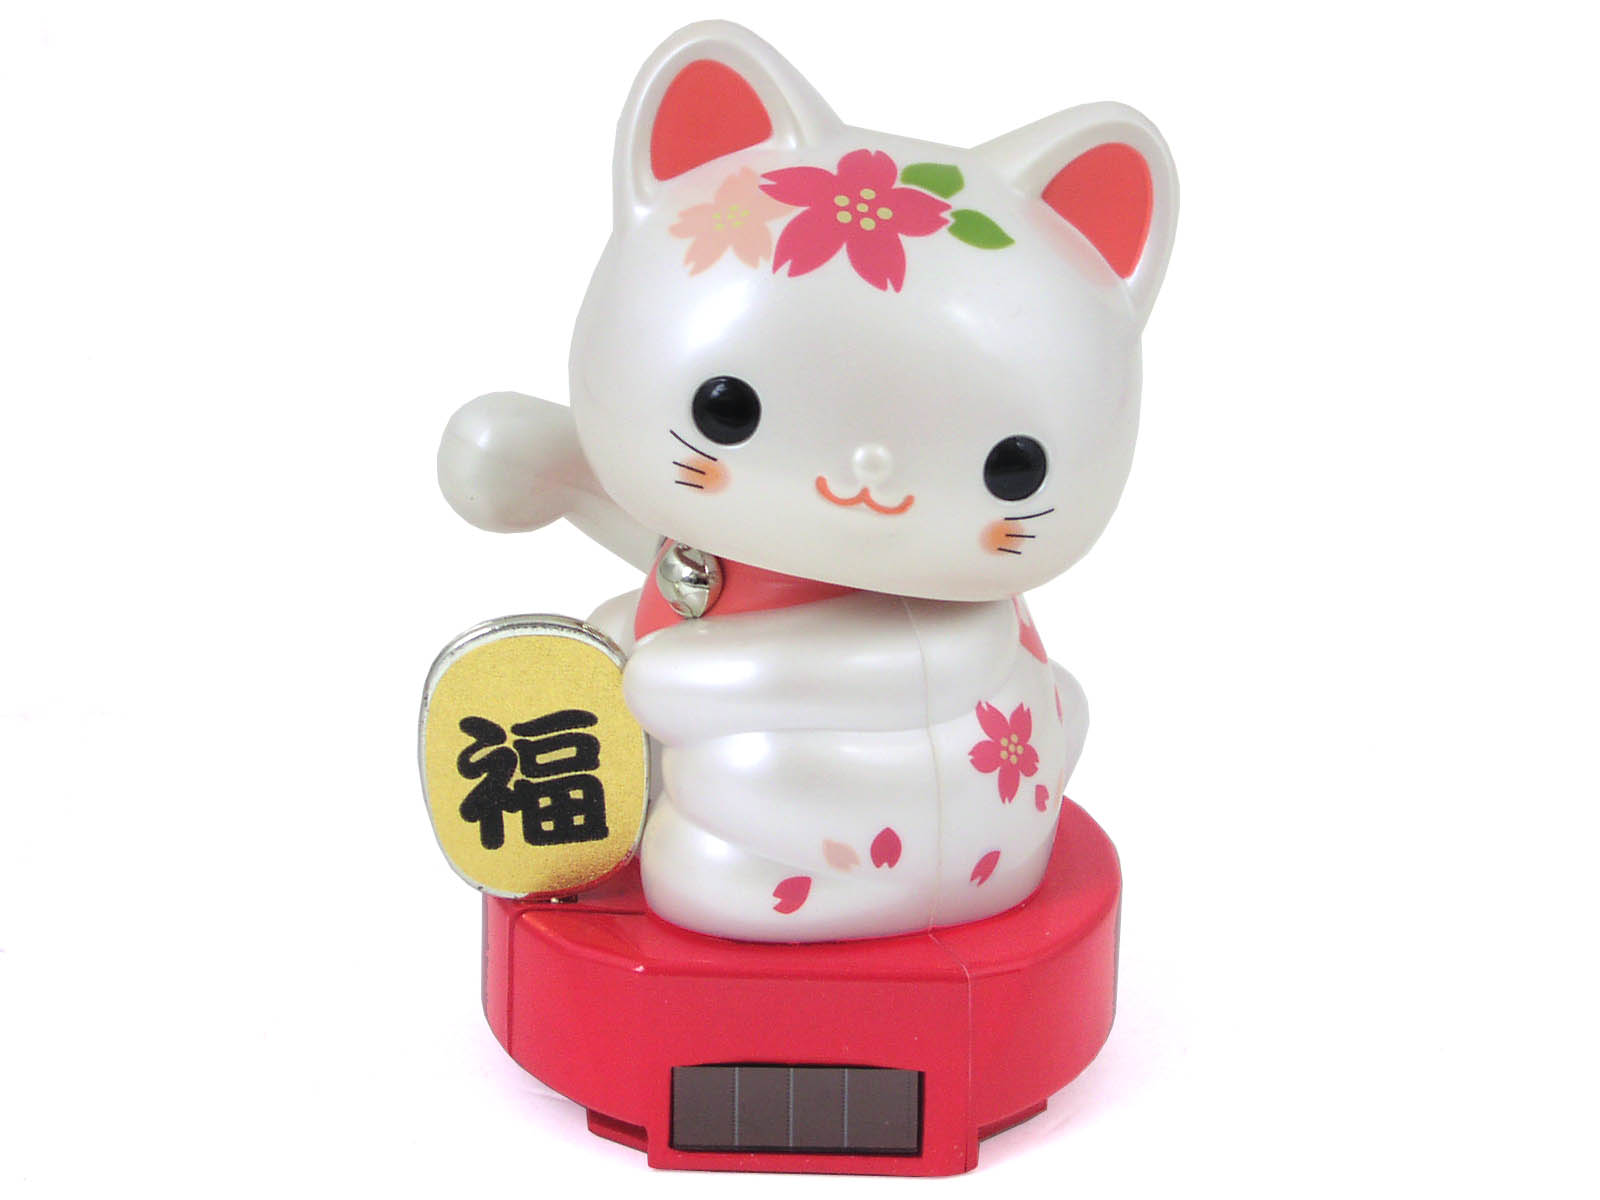 Cherry Blossom Pink and White Solar Powered Maneki Neko or ... - photo#32